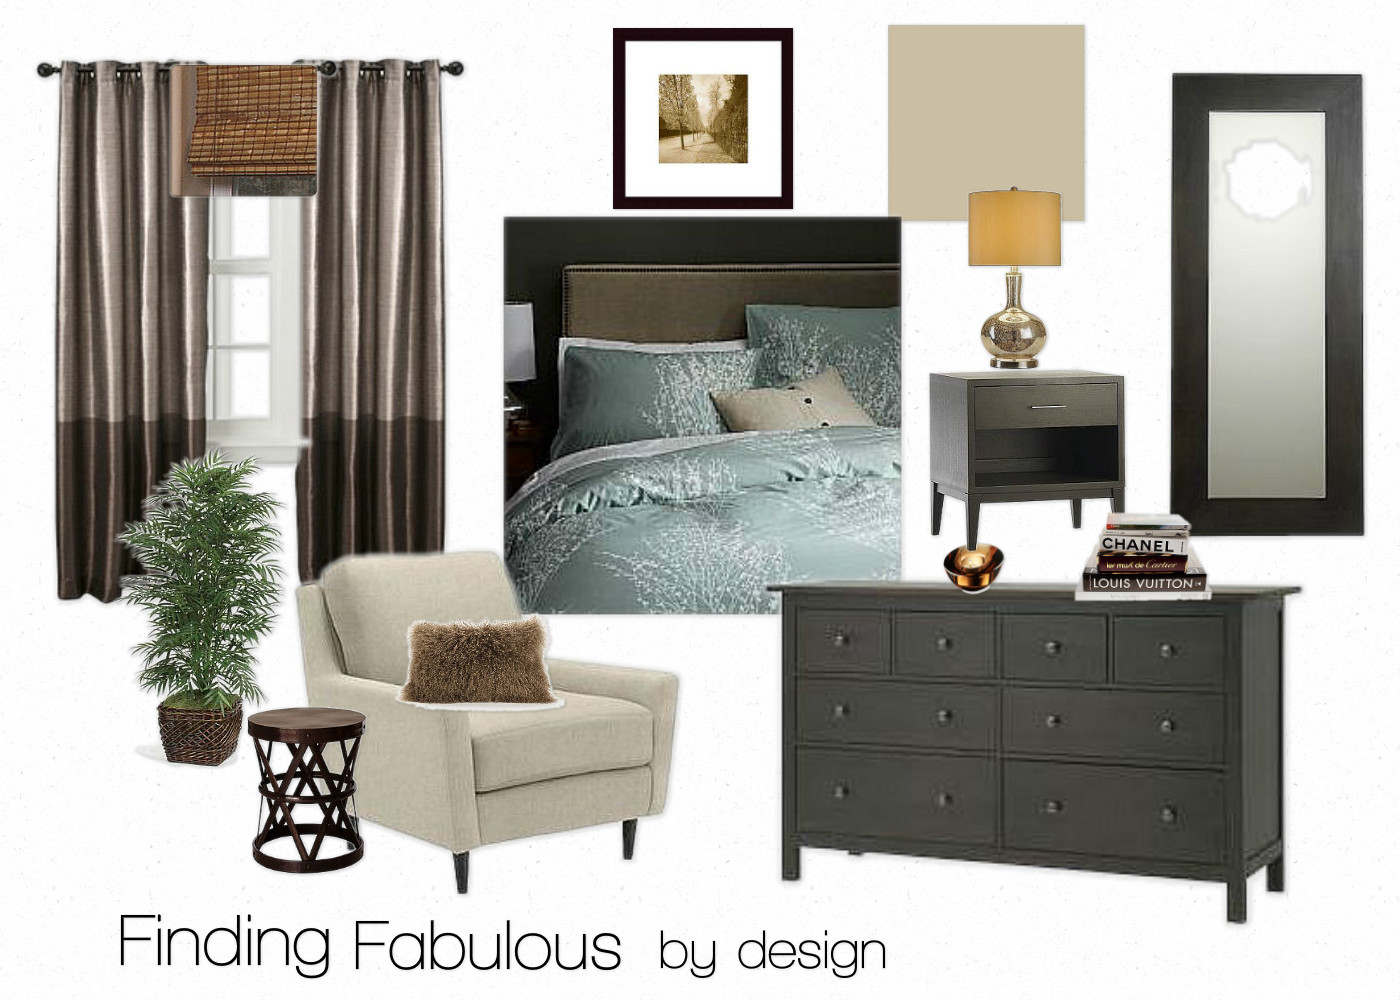 Finding Fabulous: Affordable Master Bedroommood board design